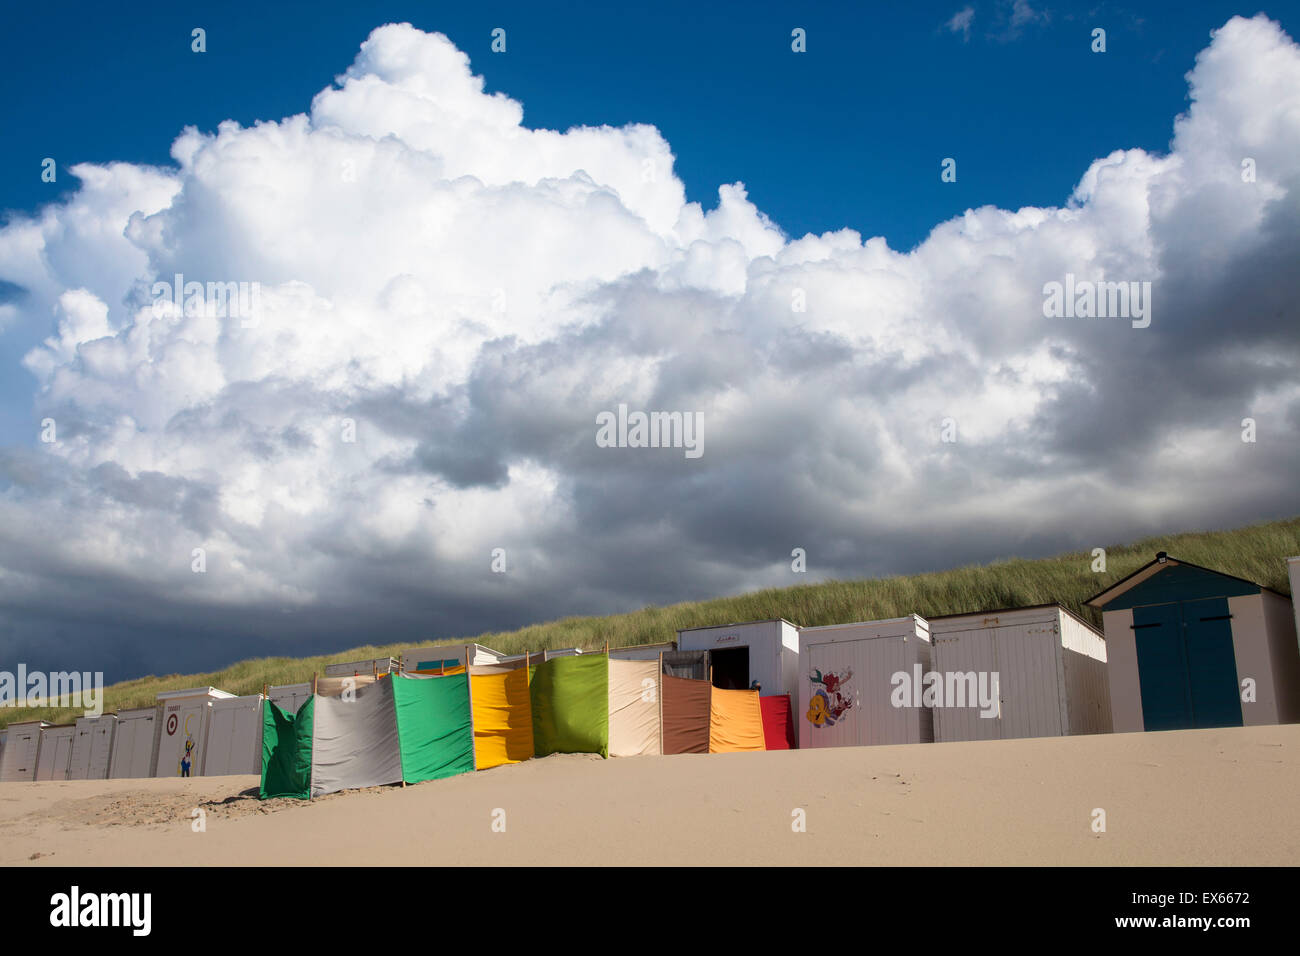 Europe, Netherlands, at the beach in Oostkapelle on the peninsula Walcheren. - Stock Image